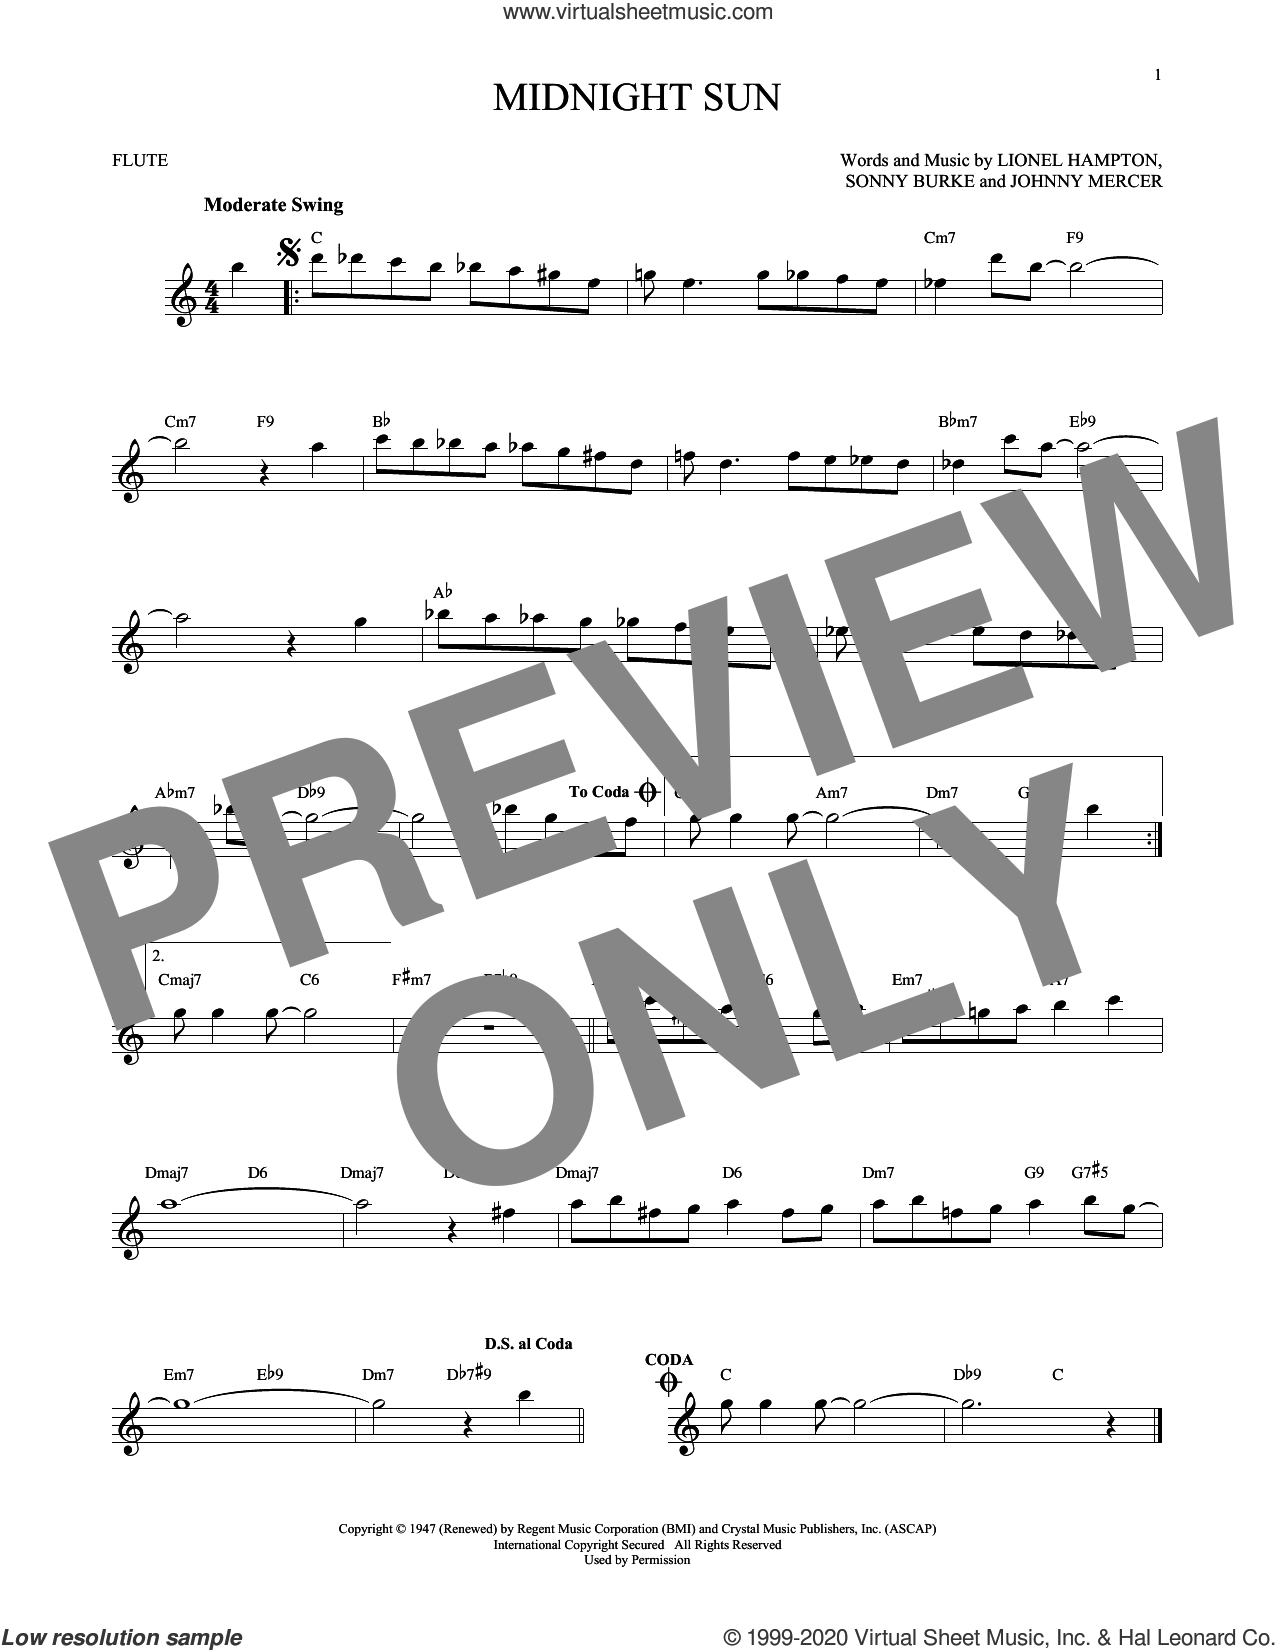 Midnight Sun sheet music for flute solo by Johnny Mercer, Lionel Hampton and Sonny Burke, intermediate skill level